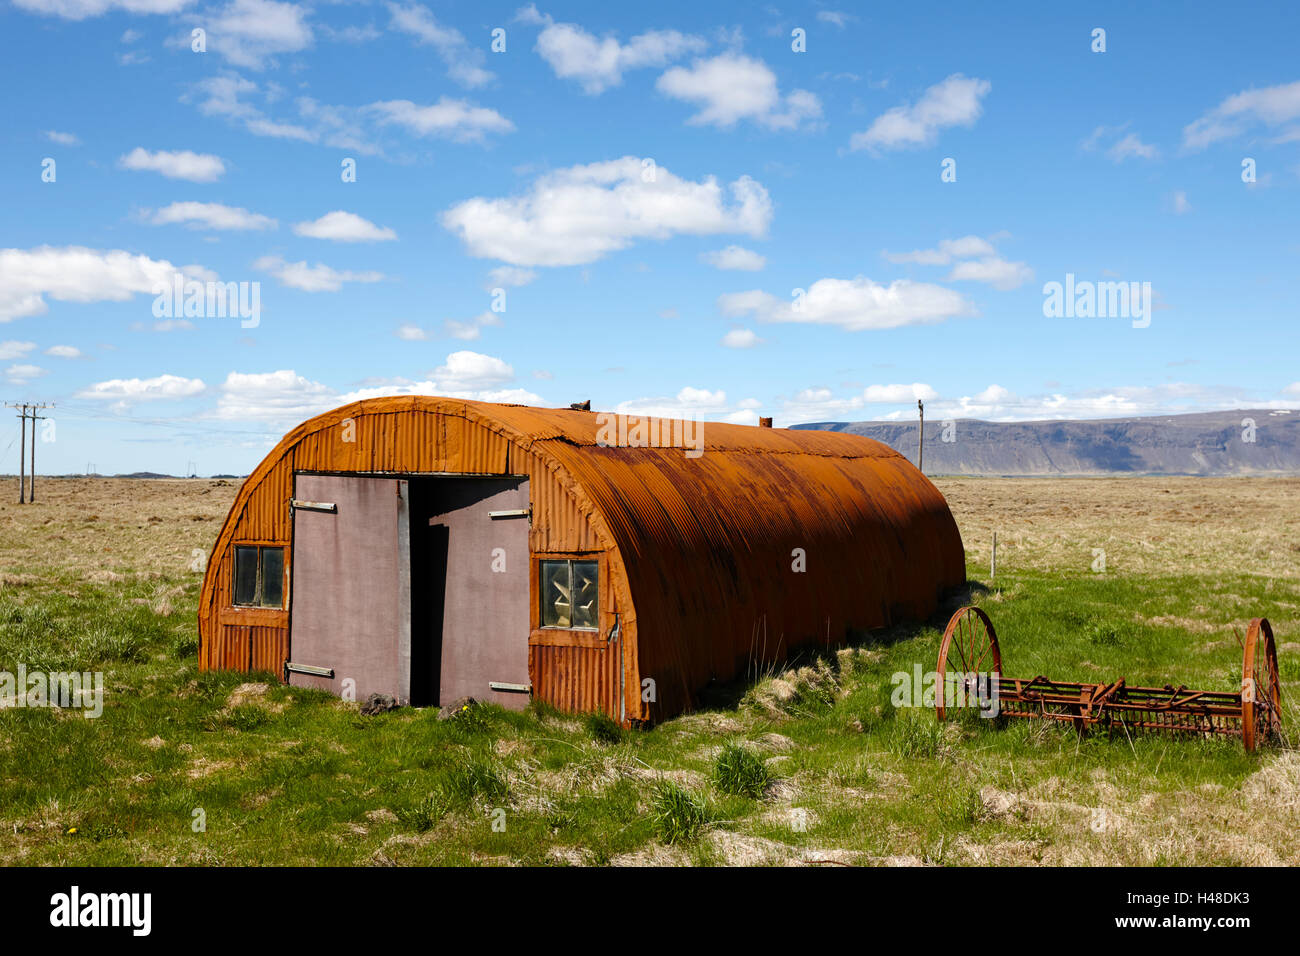 old rusting nissen hut on farmland in Iceland - Stock Image